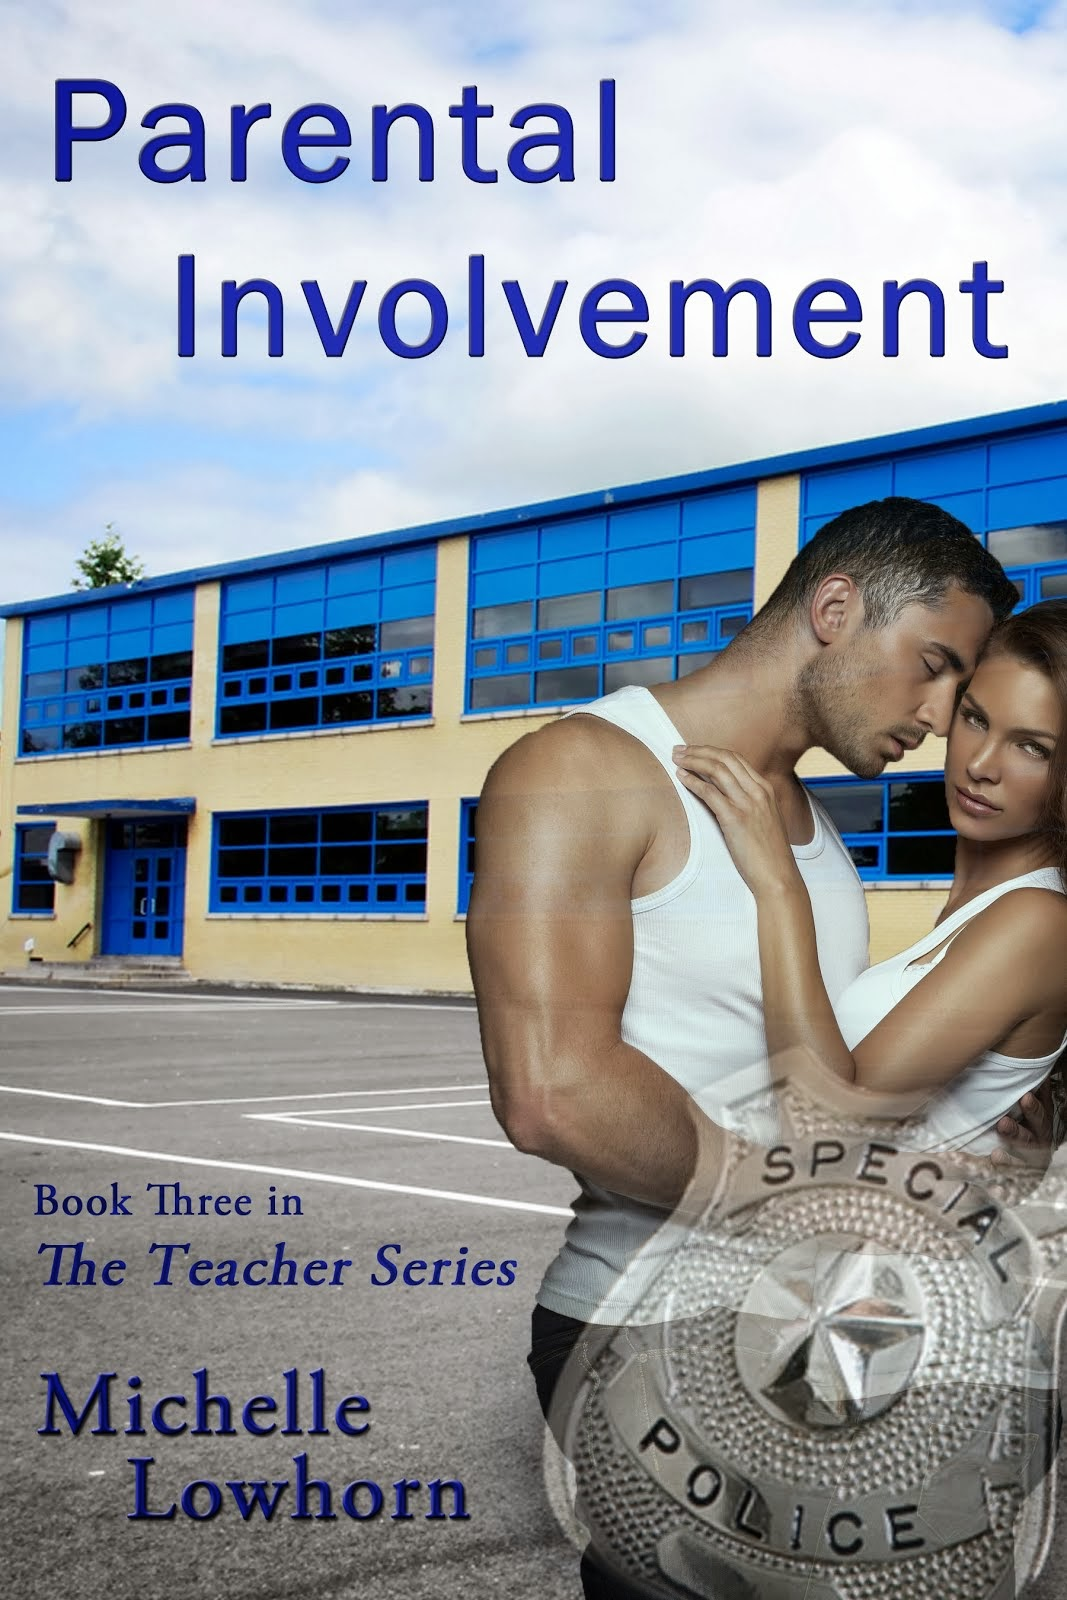 Parental Involvement Book 3 in The Teacher Series